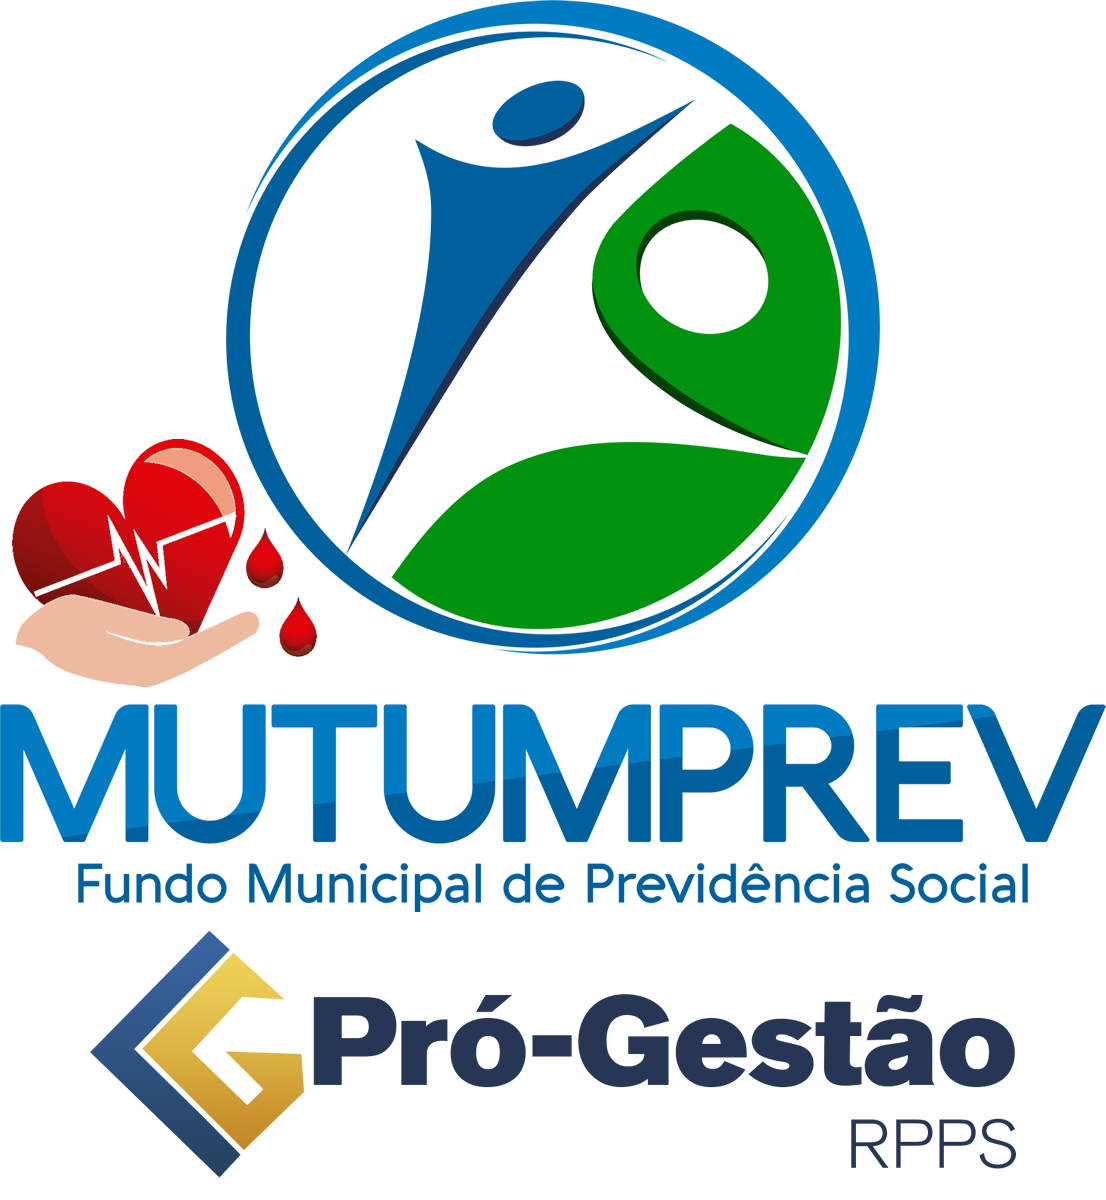 MUTUMPREV